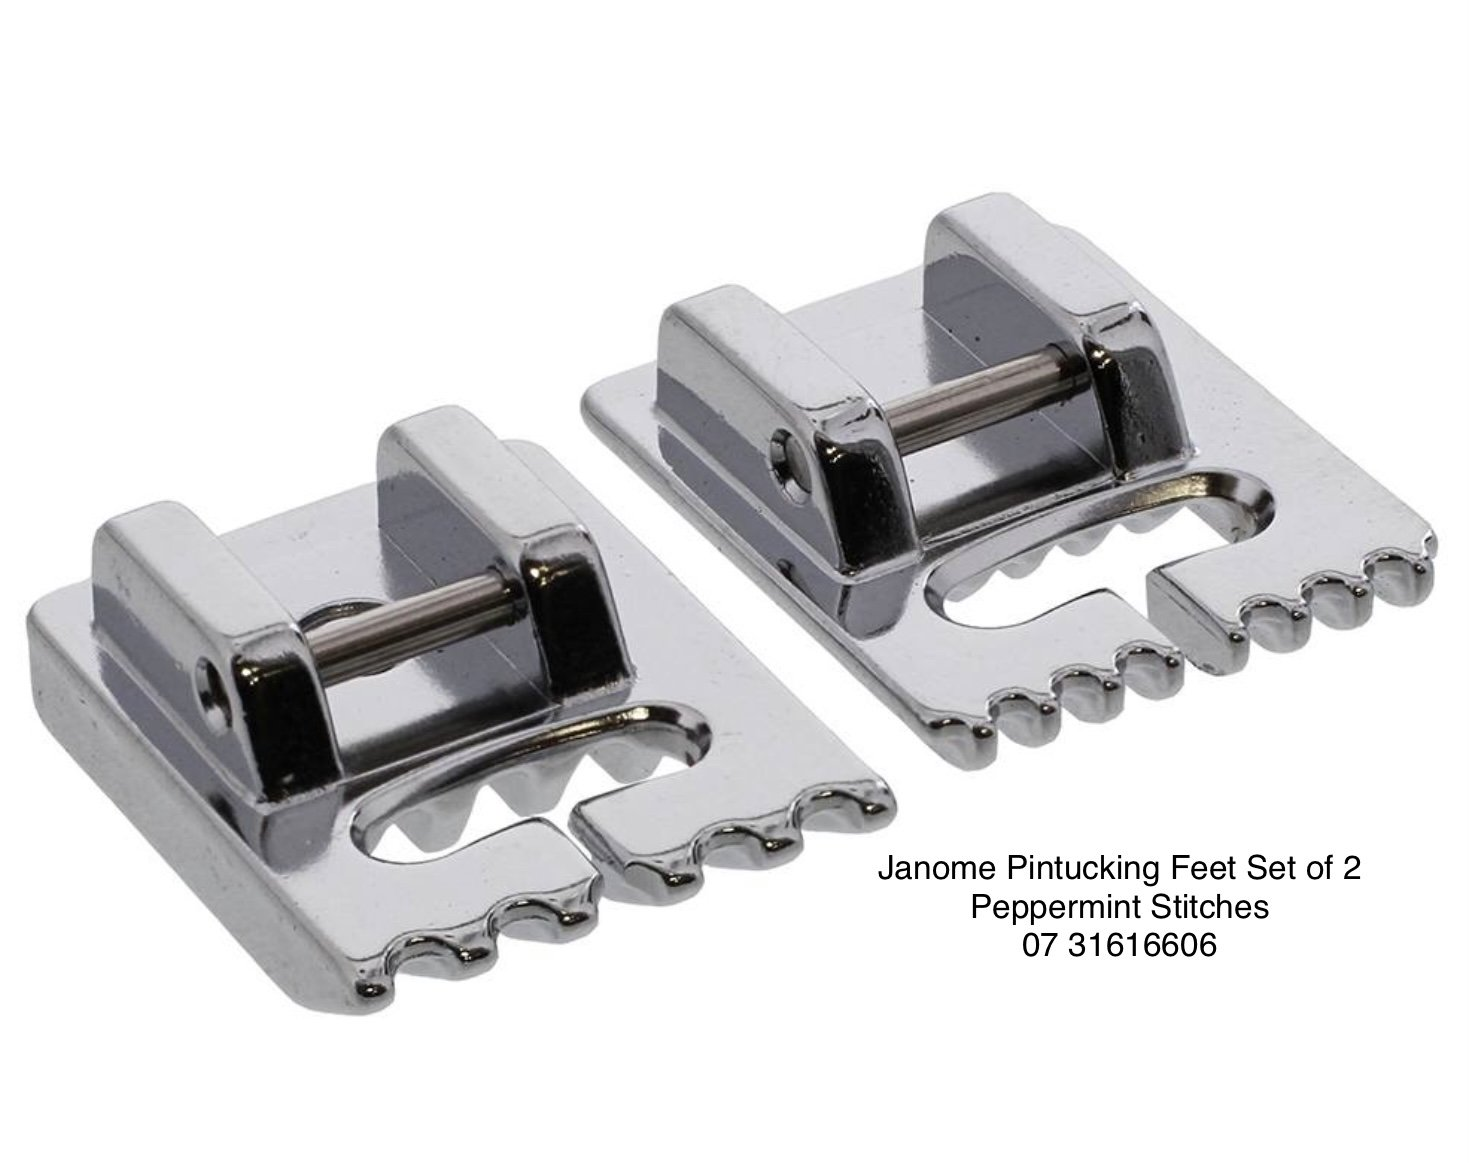 Janome Pintuck Feet Set of 2 5 & 7 Groove - 7mm Top Loading Machine